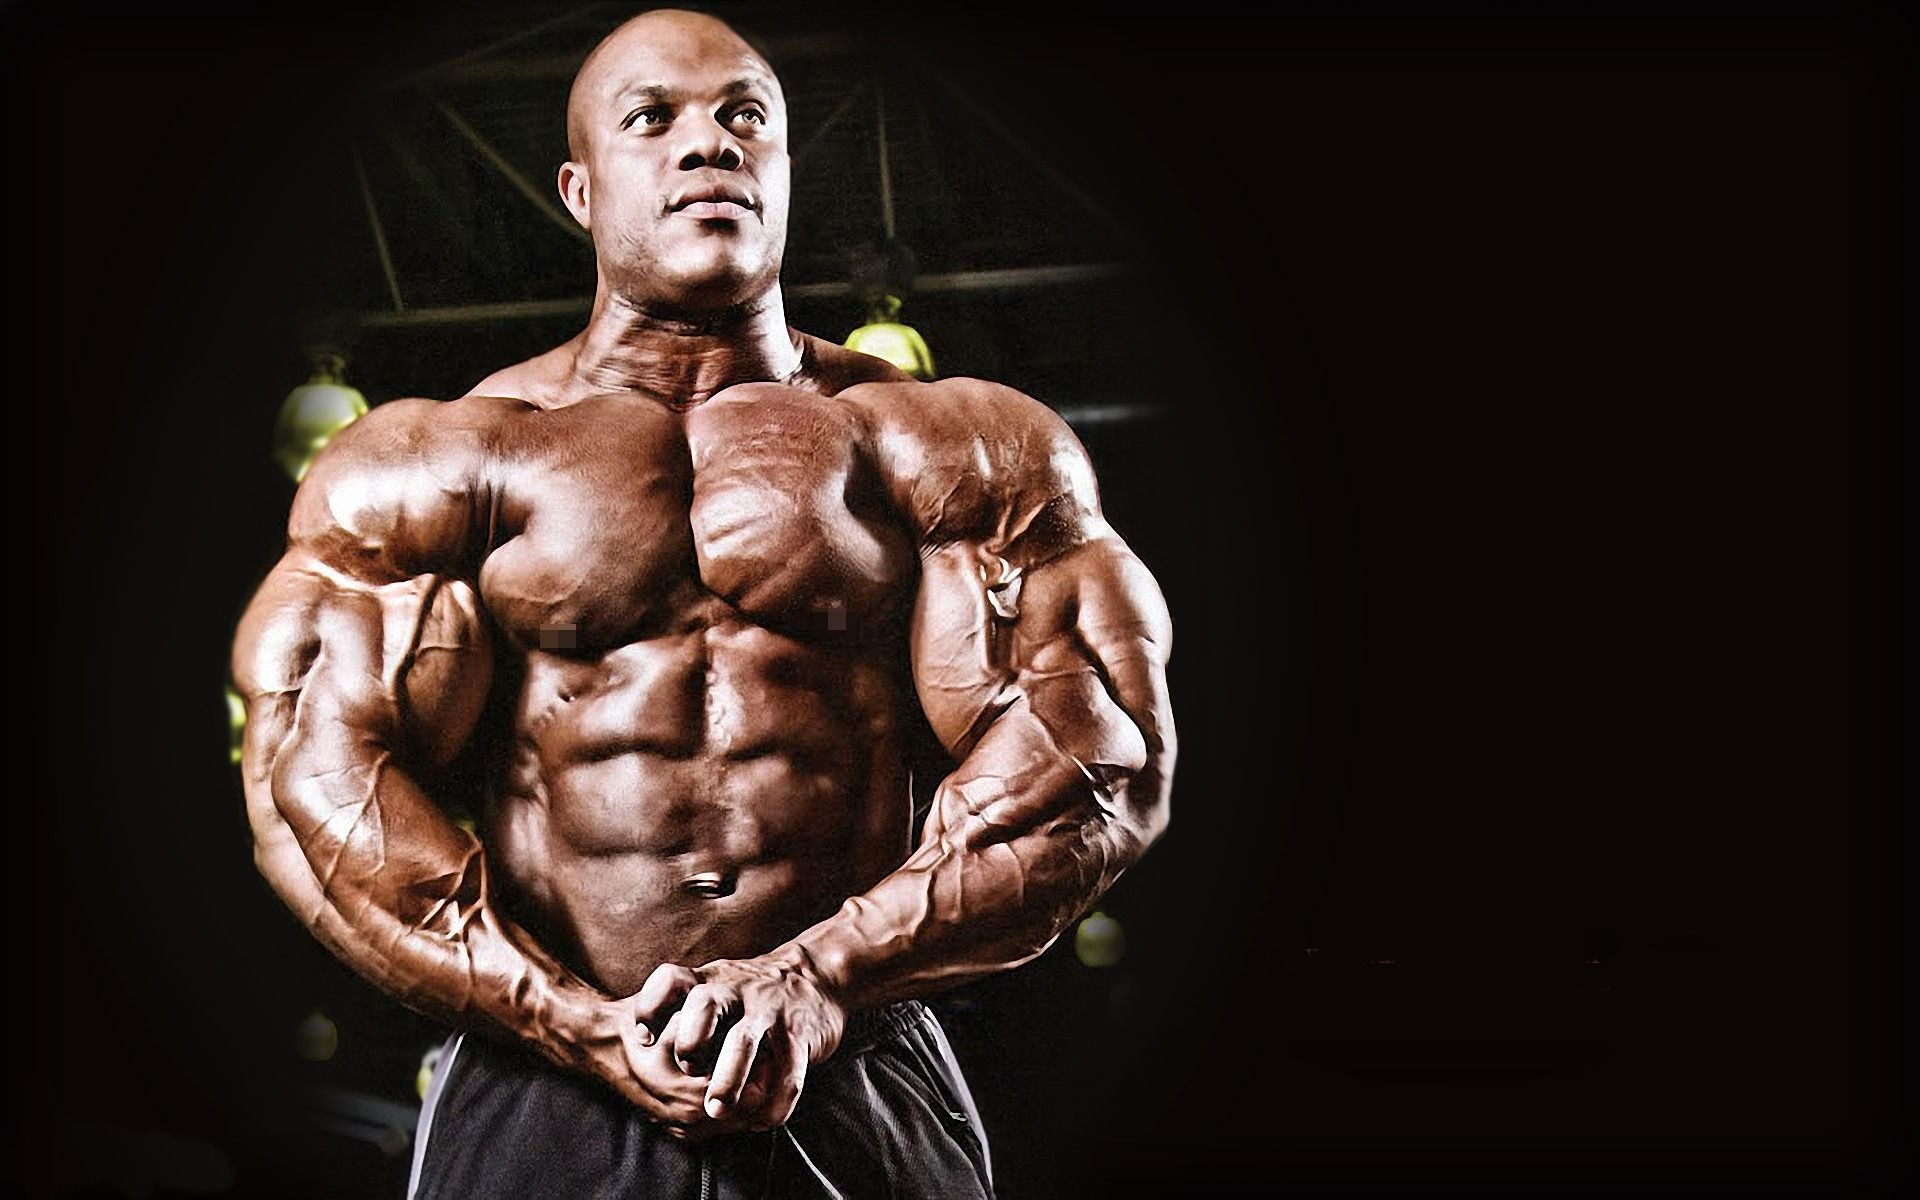 Phil Heath and his training plan and diet